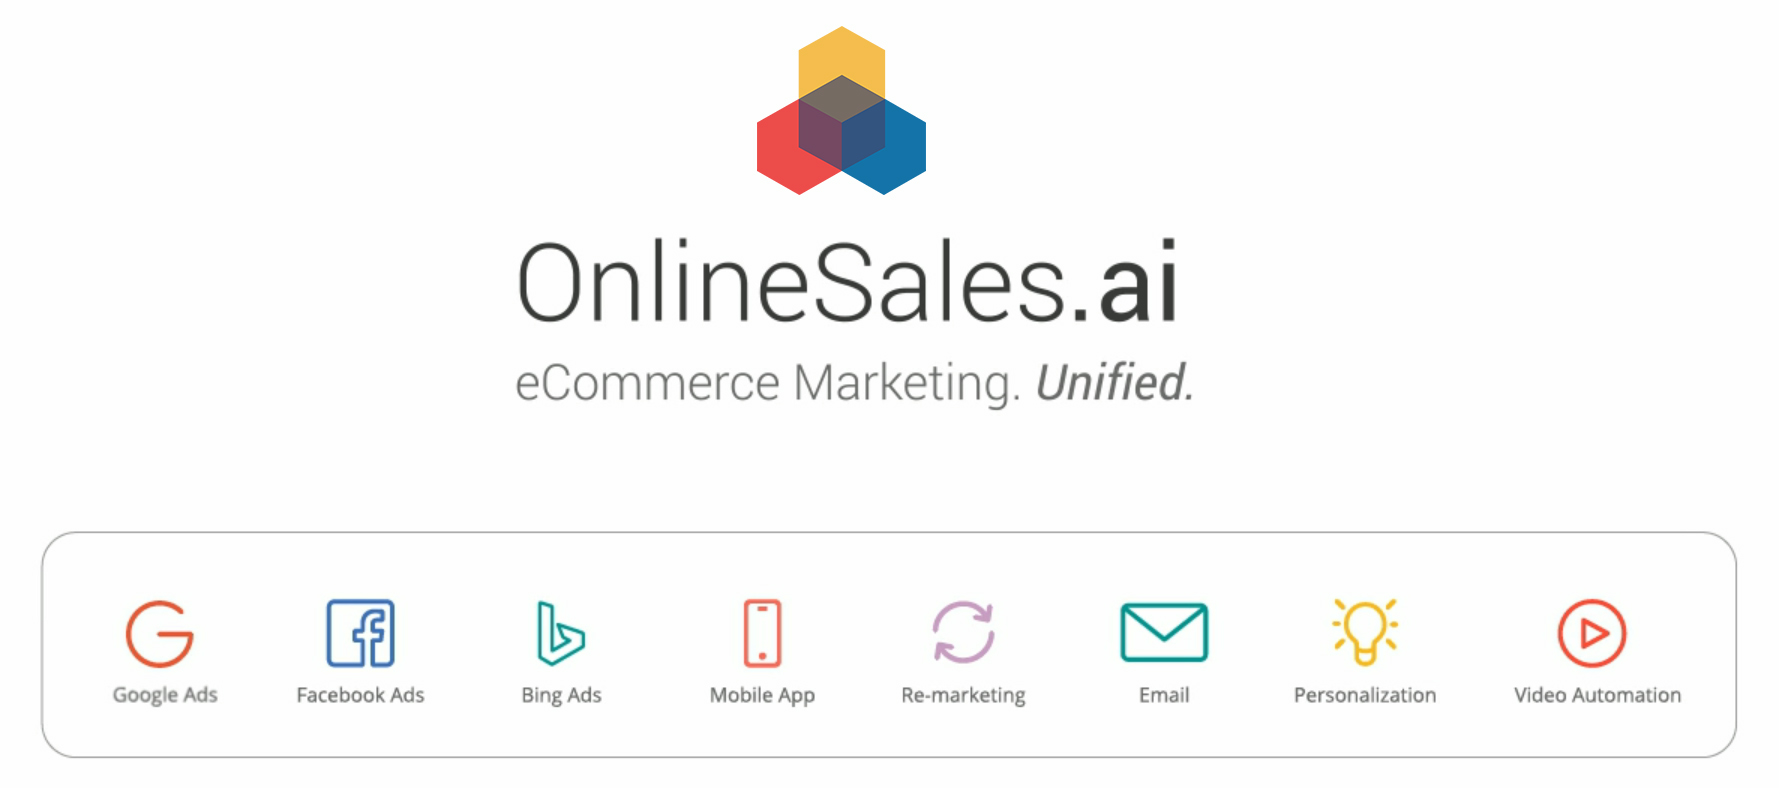 OnlineSales-AI